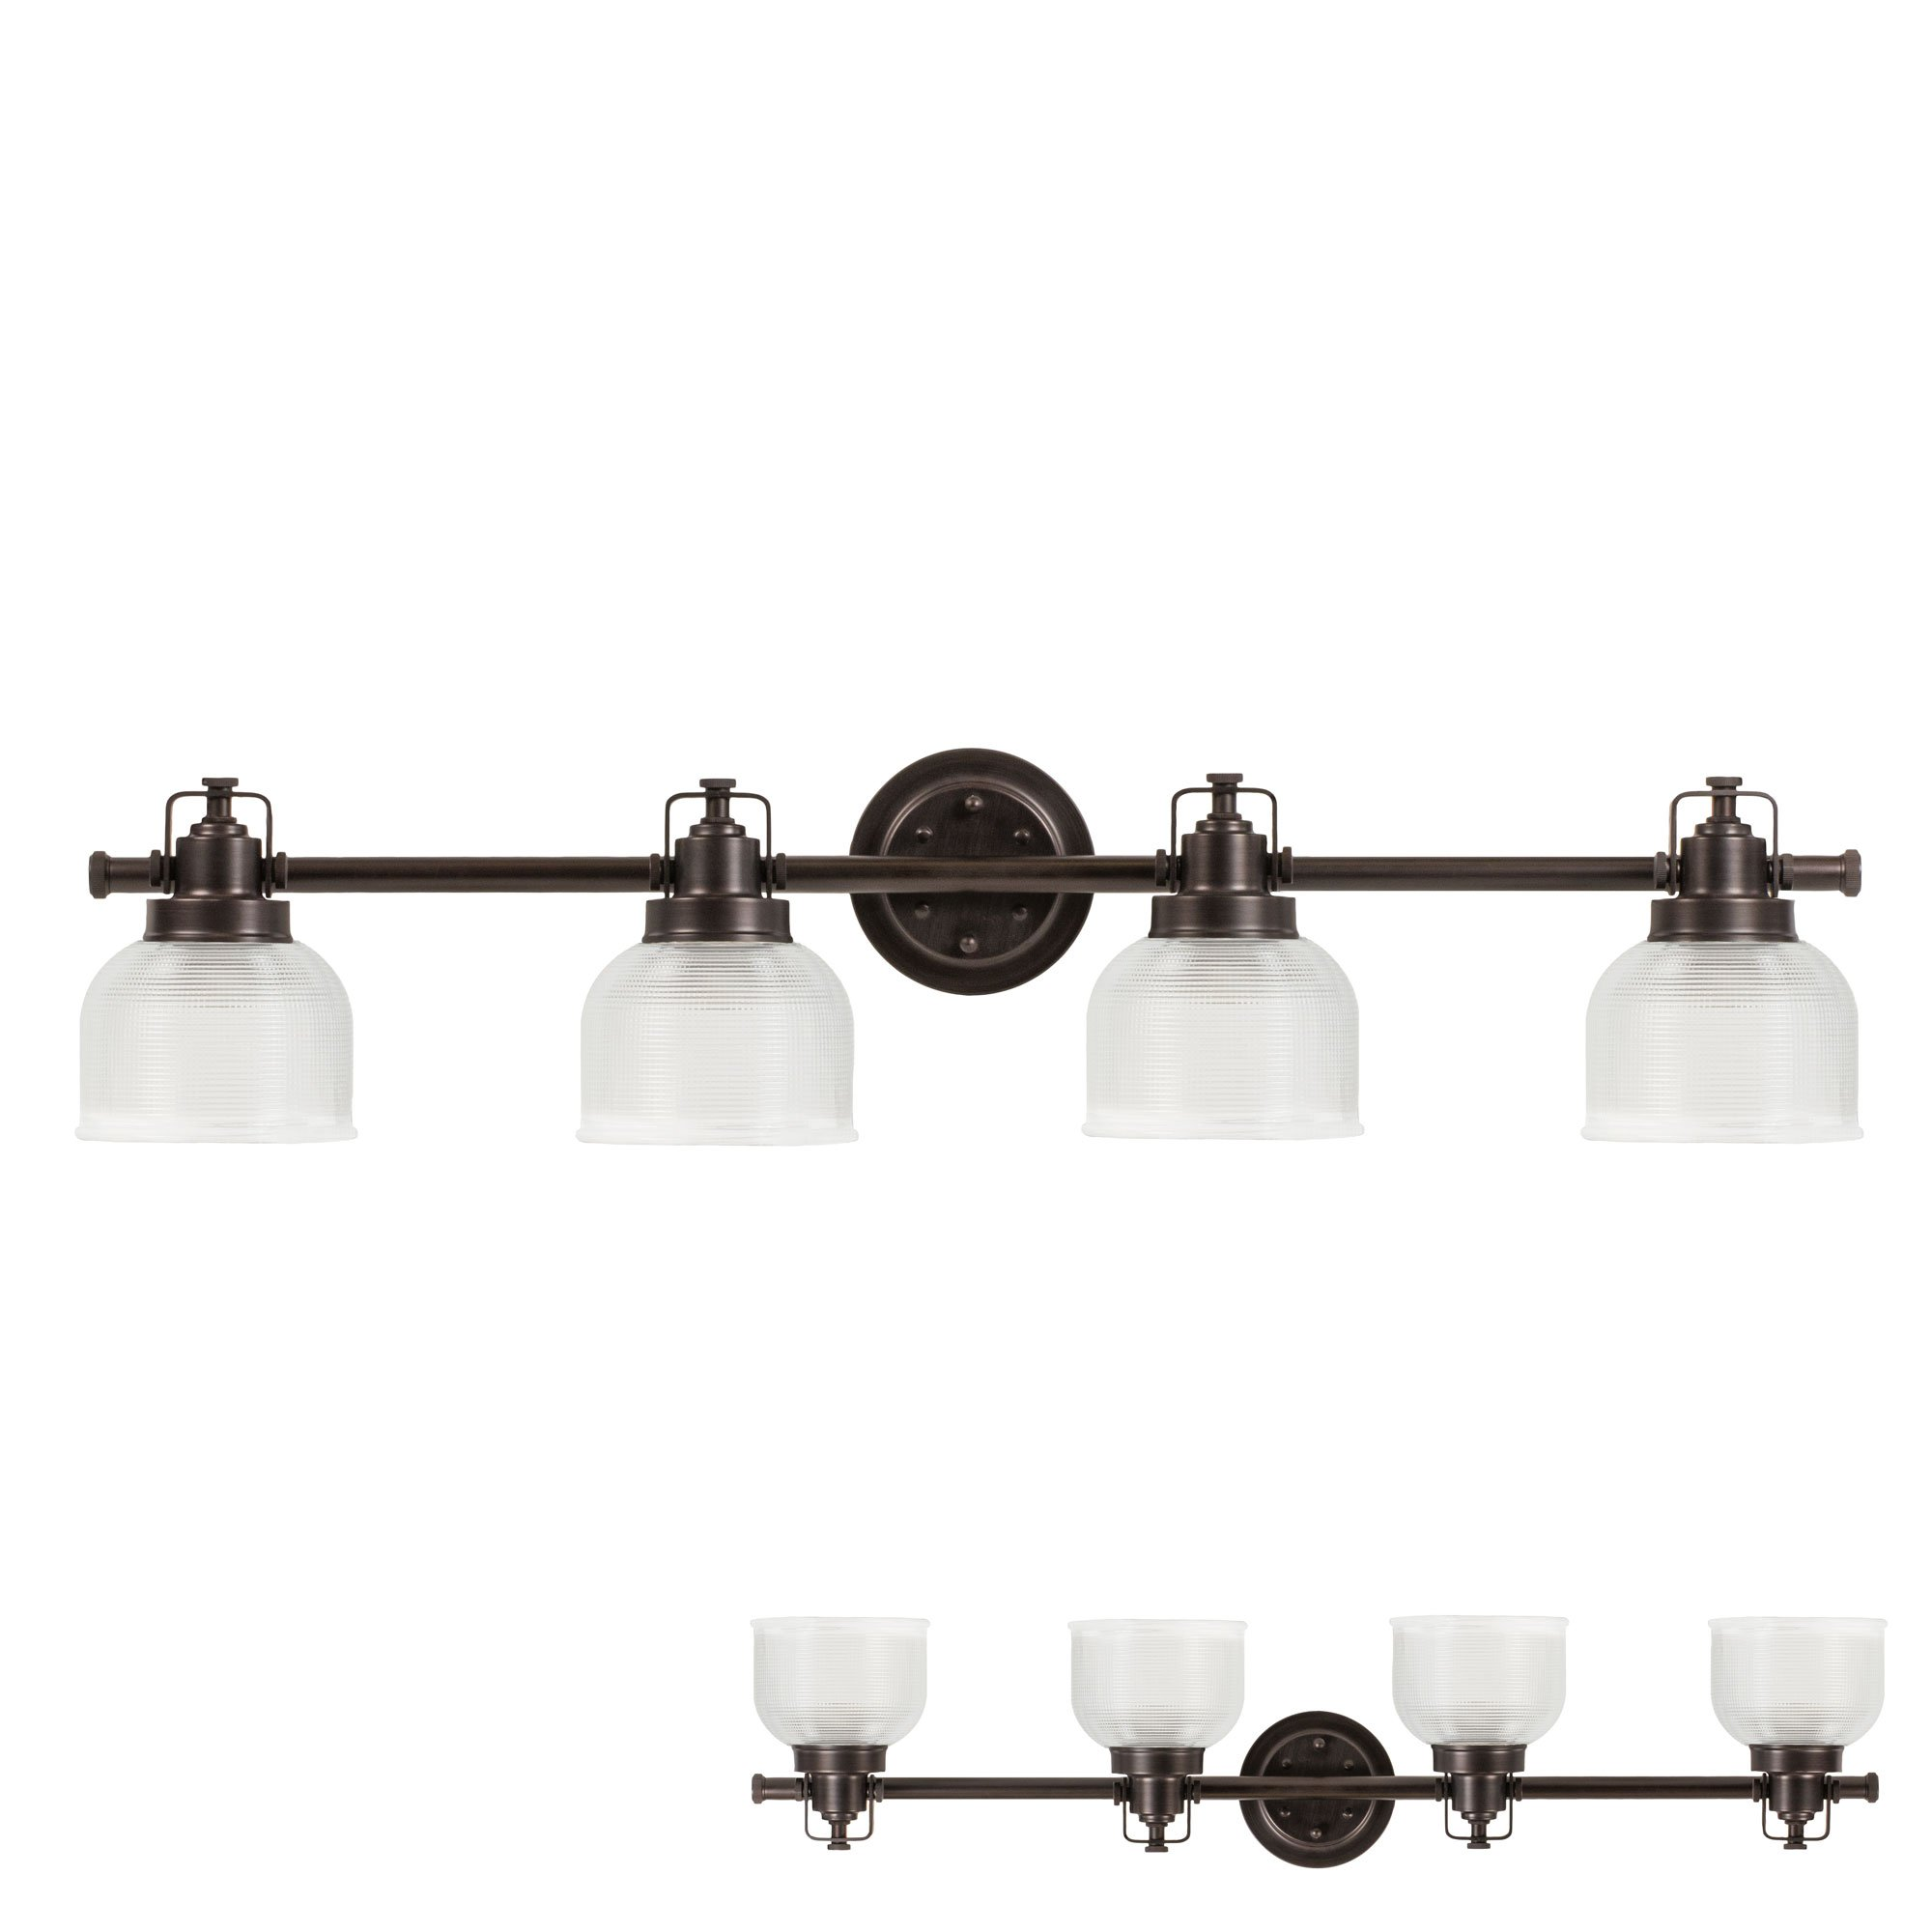 Oil Rubbed Bronze Vanity Light 4 Bulb Bath Wall Fixture Clear Double Prismatic Glass Globes by HowPlumb